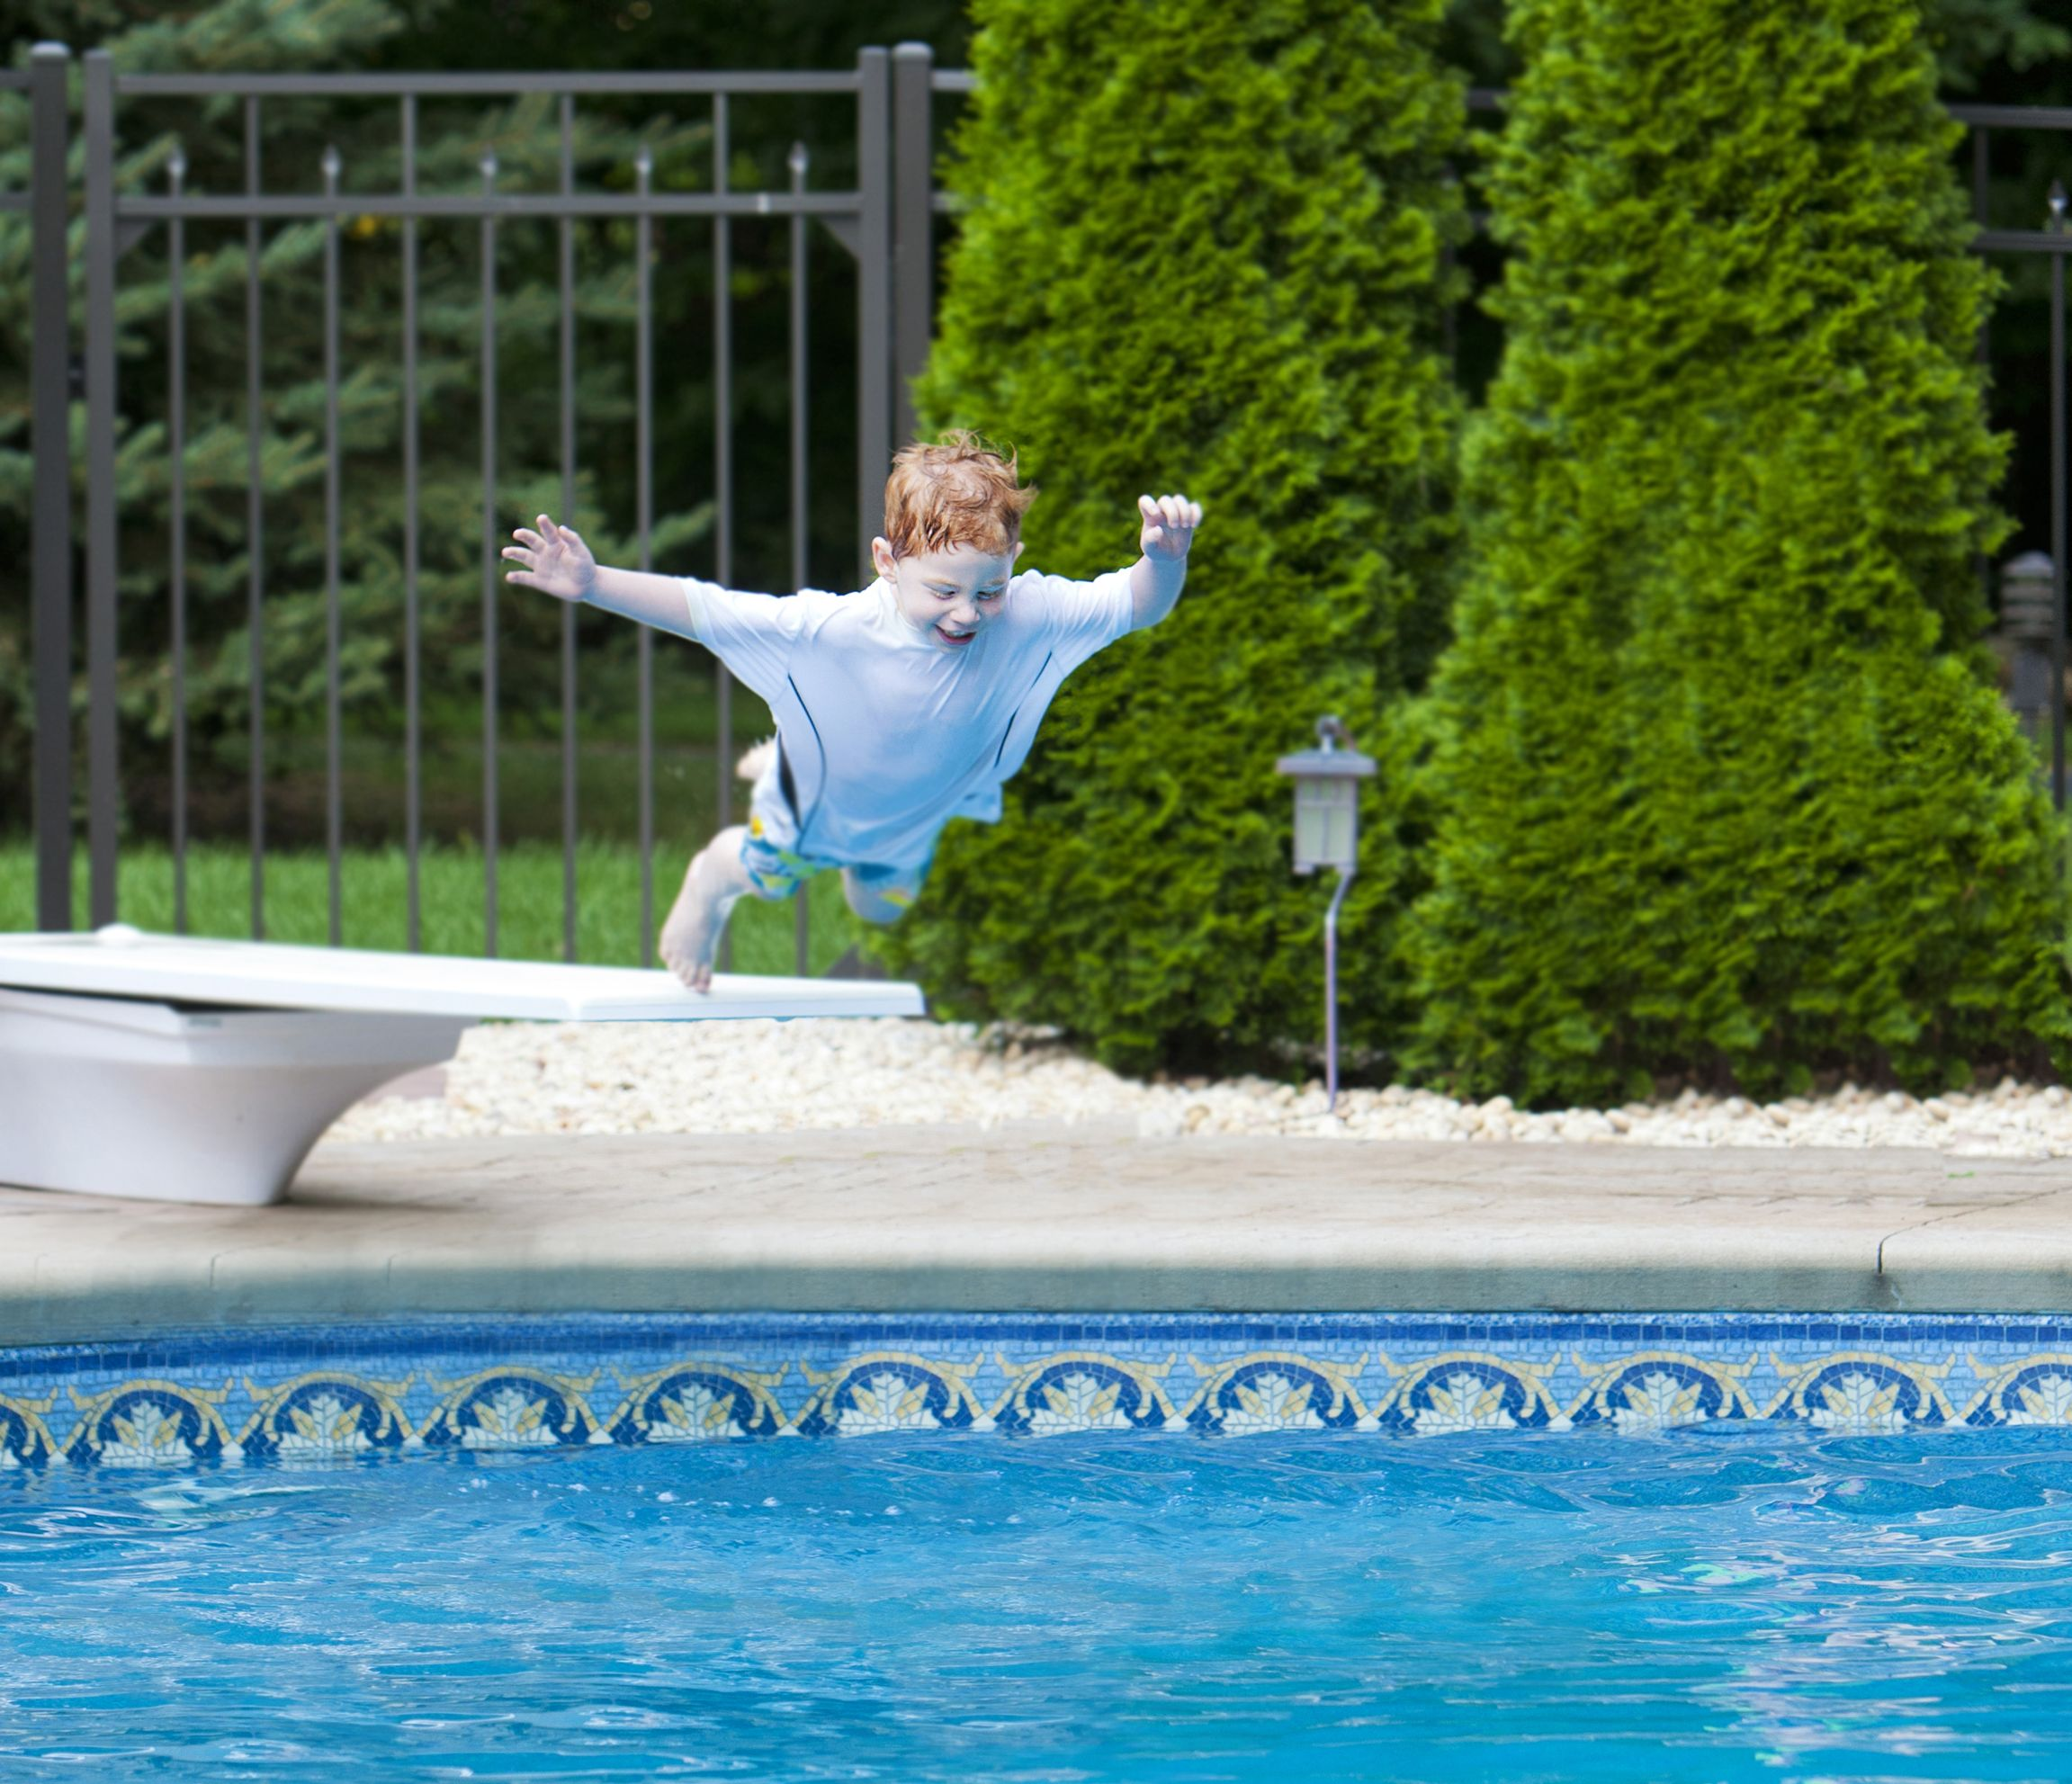 Does your insurance cover injuries caused by diving boards